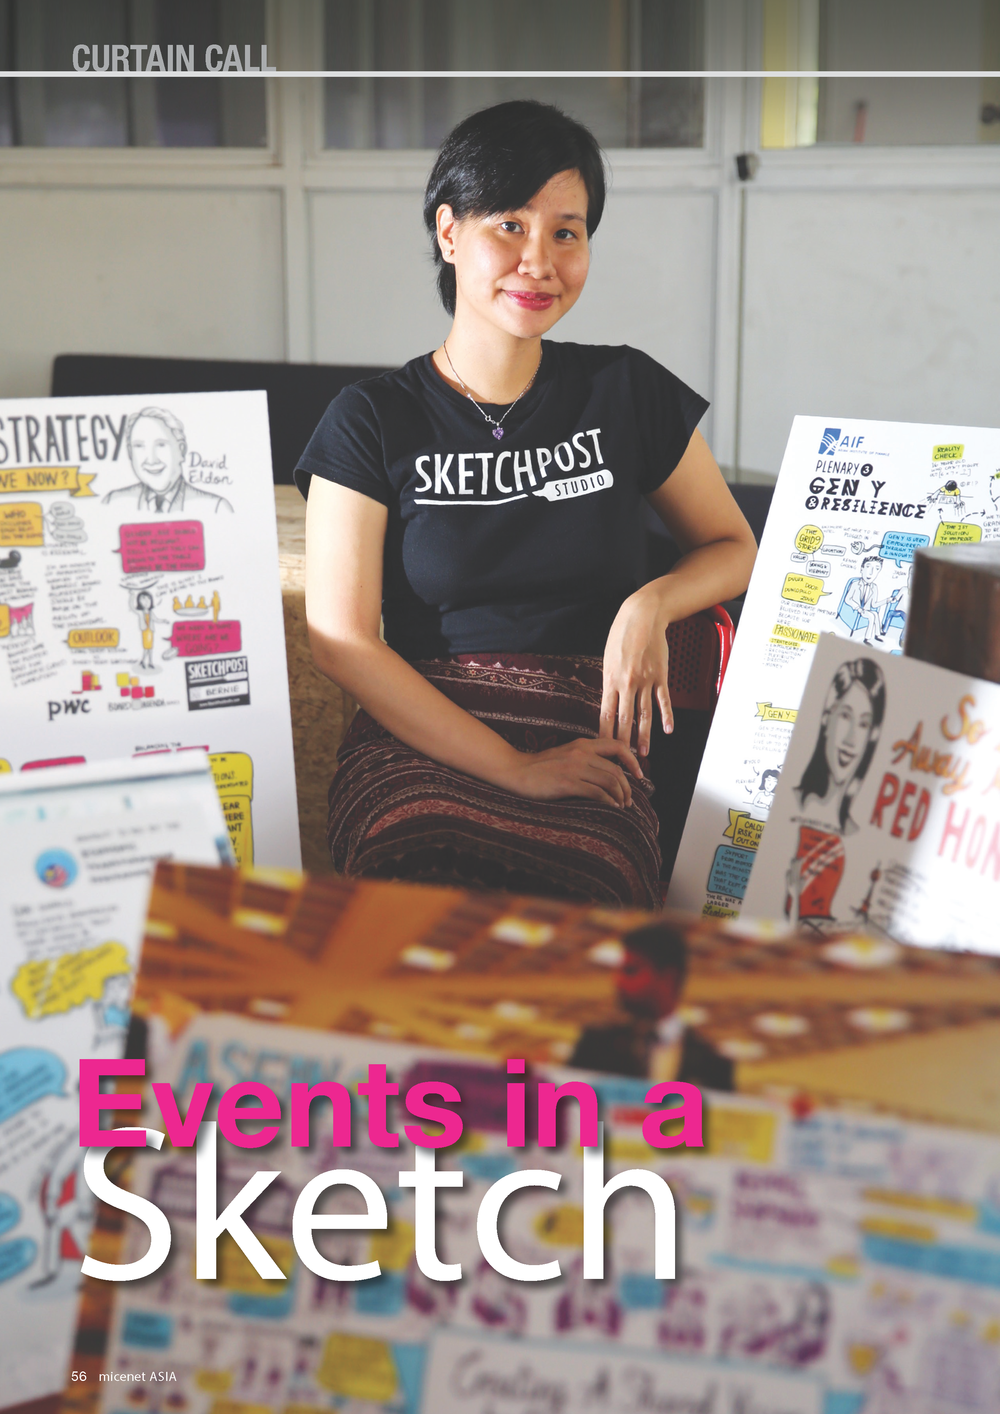 micenet sketchpost-digital-graphic-recording-infographic-video-singapore-malaysia-hong-kong